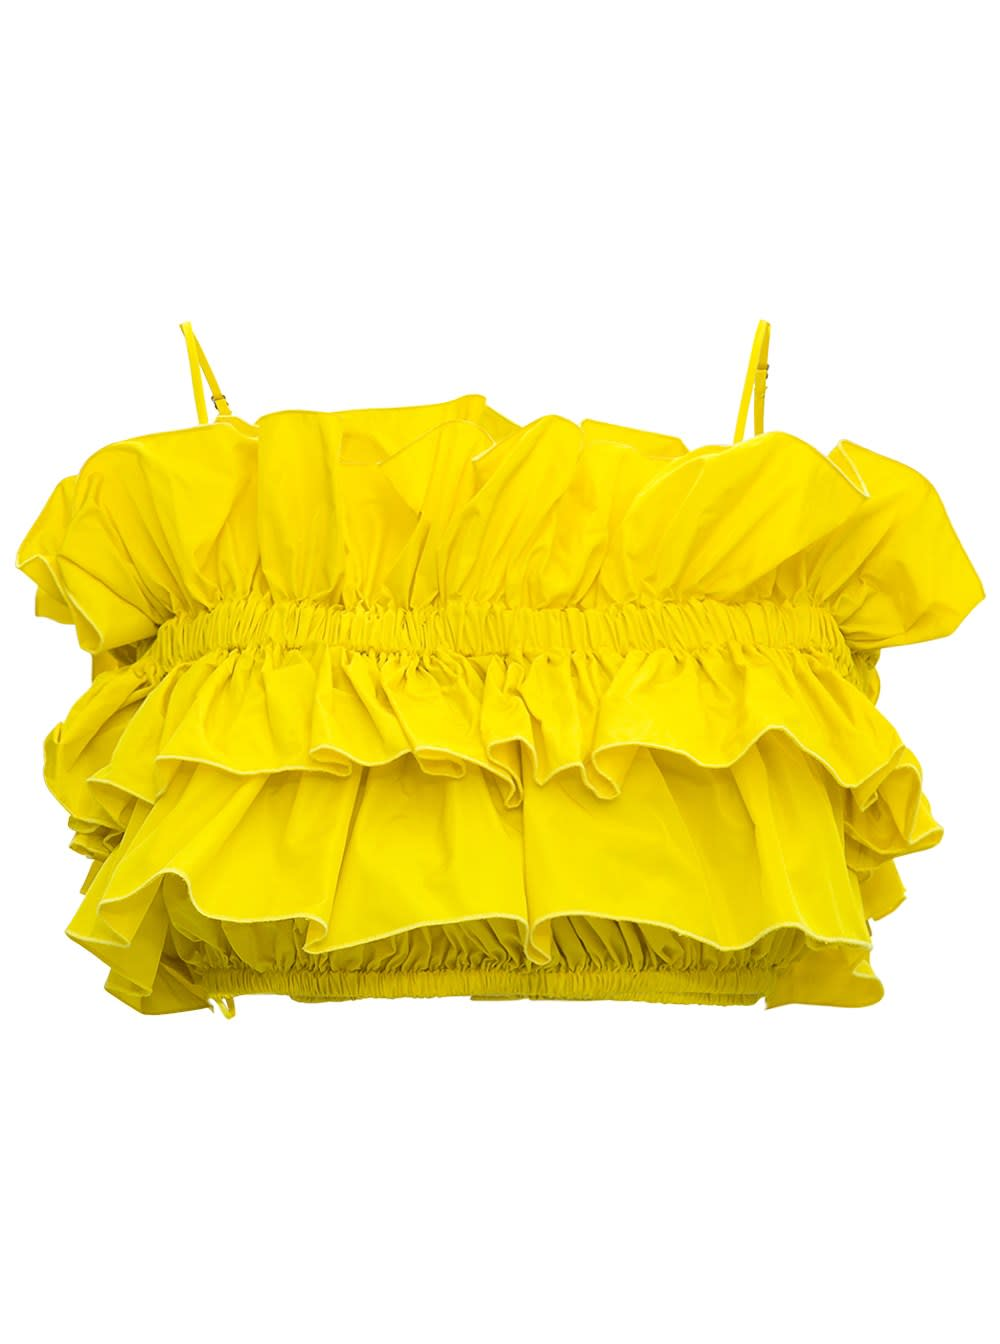 Msgm Clothing YELLOW CREPE CROP TOP WITH FLOUNCES